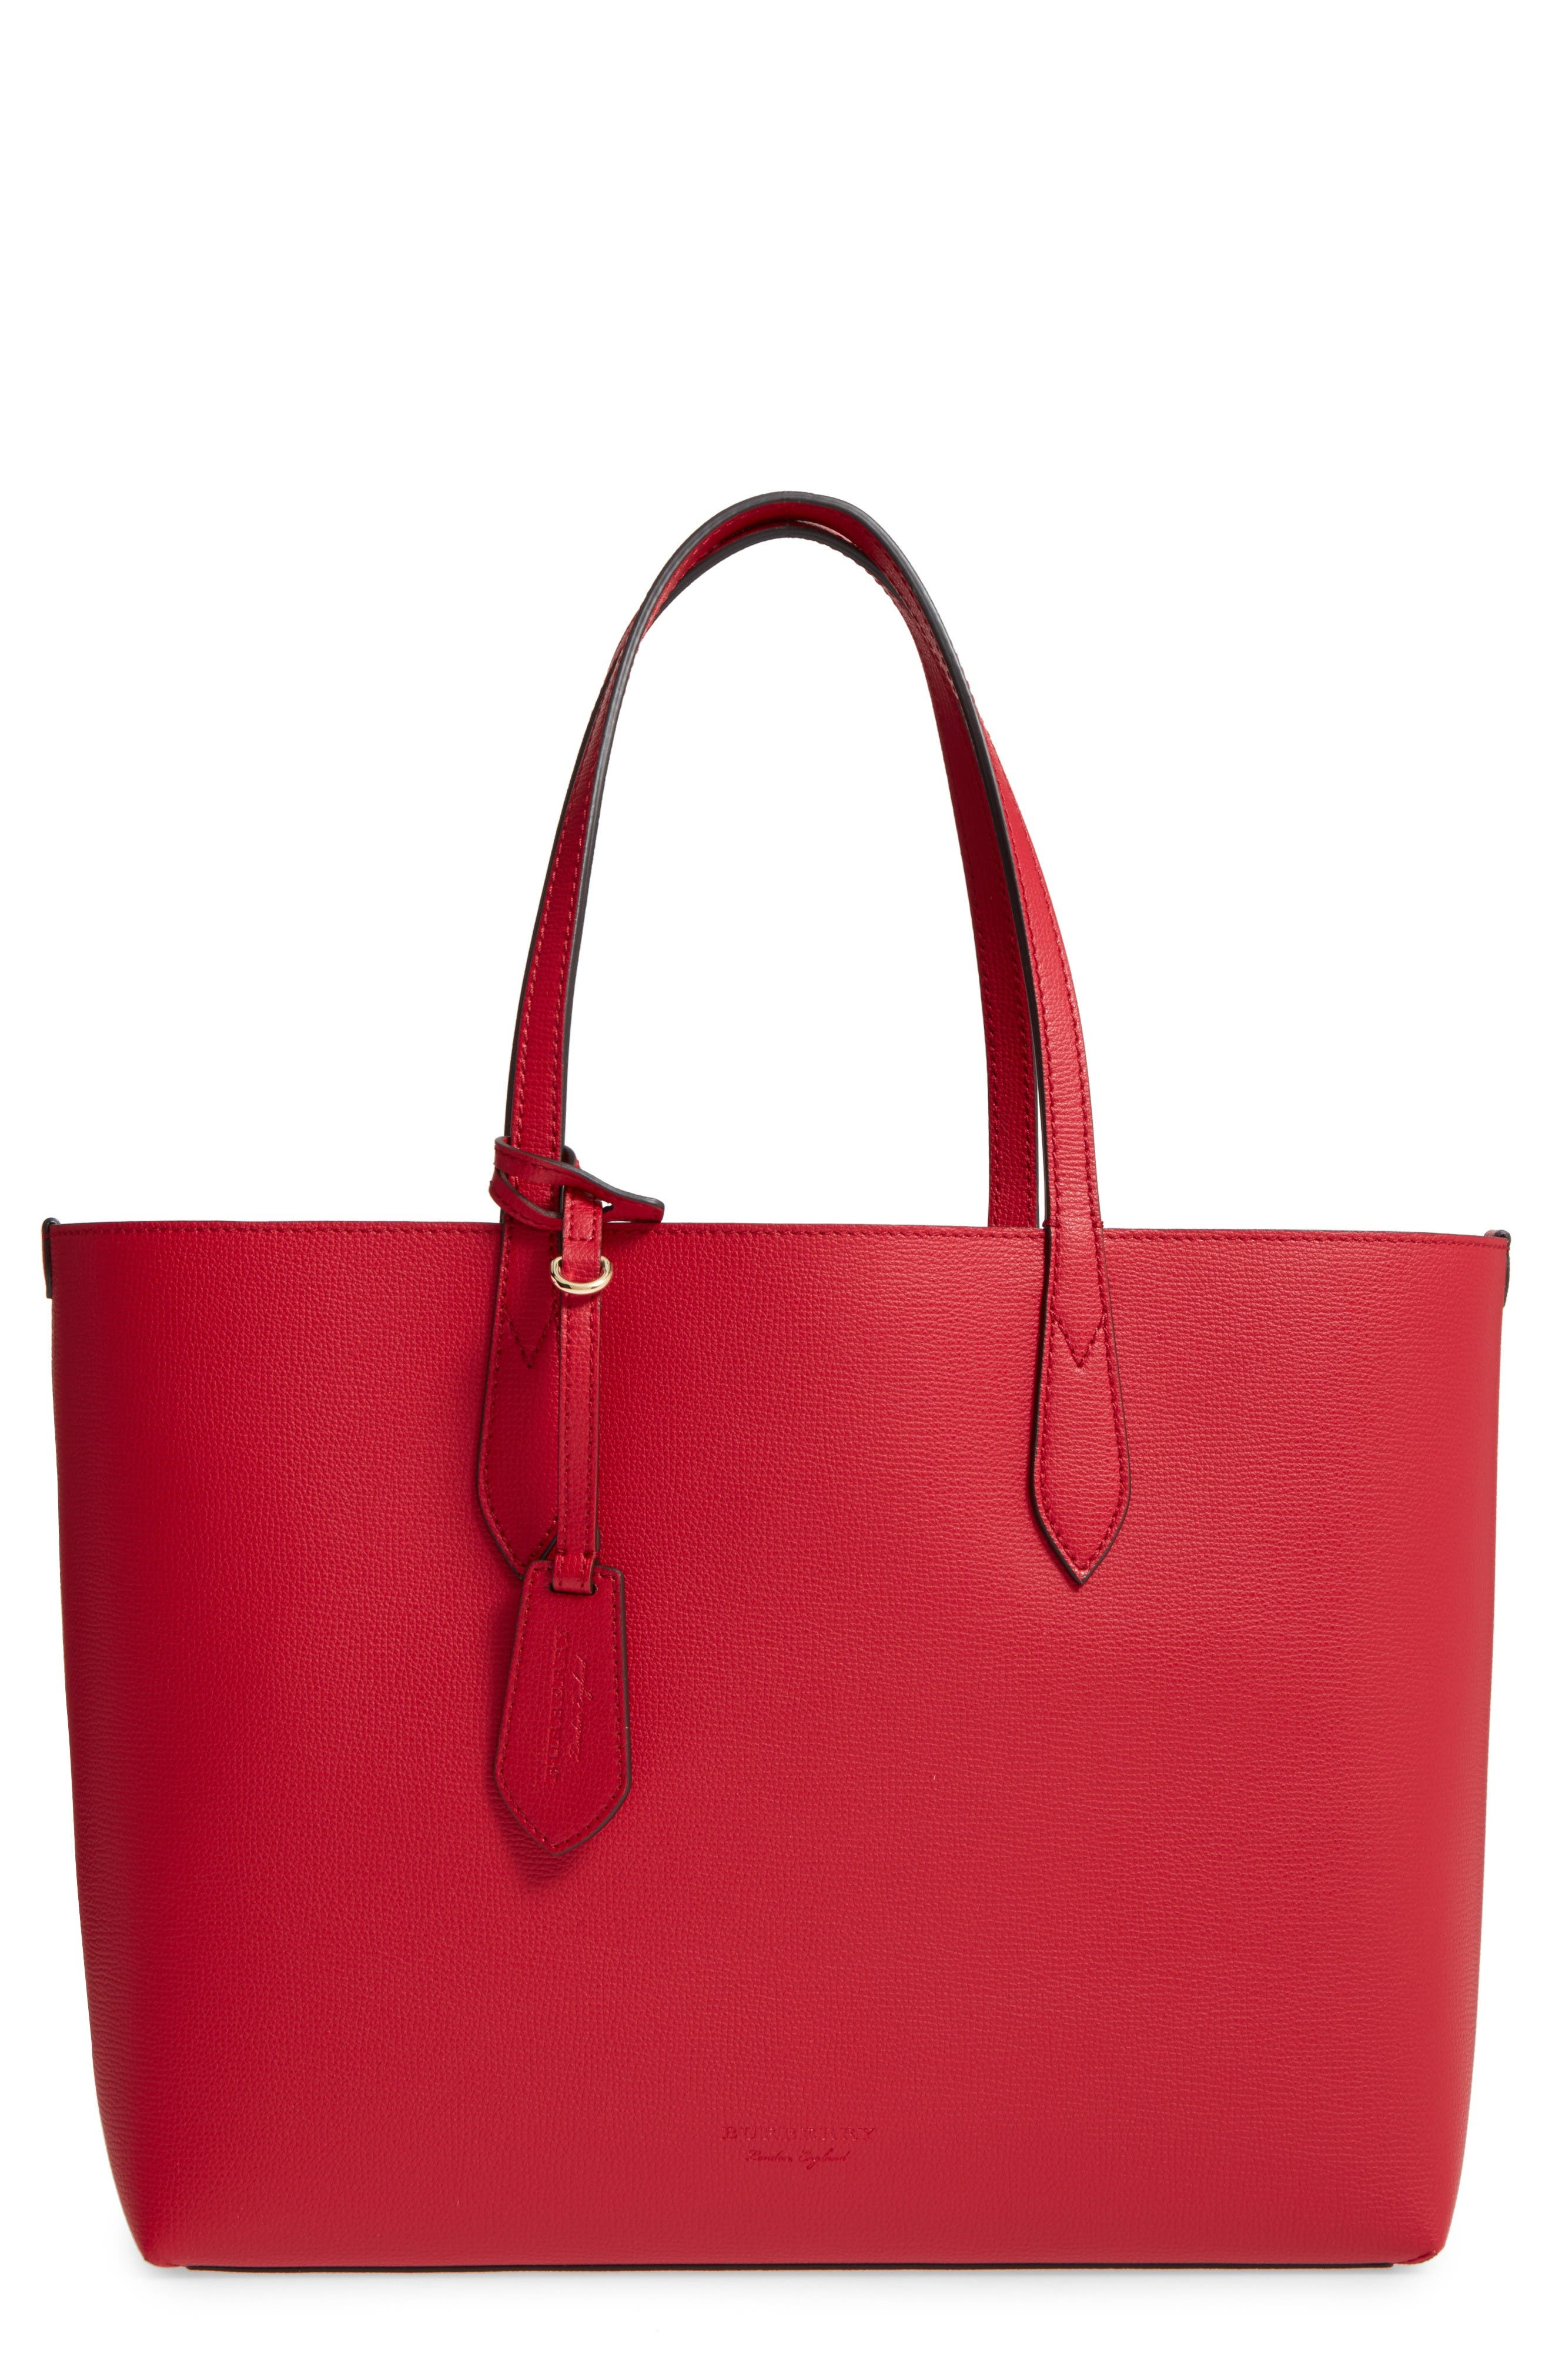 Alternate Image 1 Selected - Burberry Reversible Leather Tote